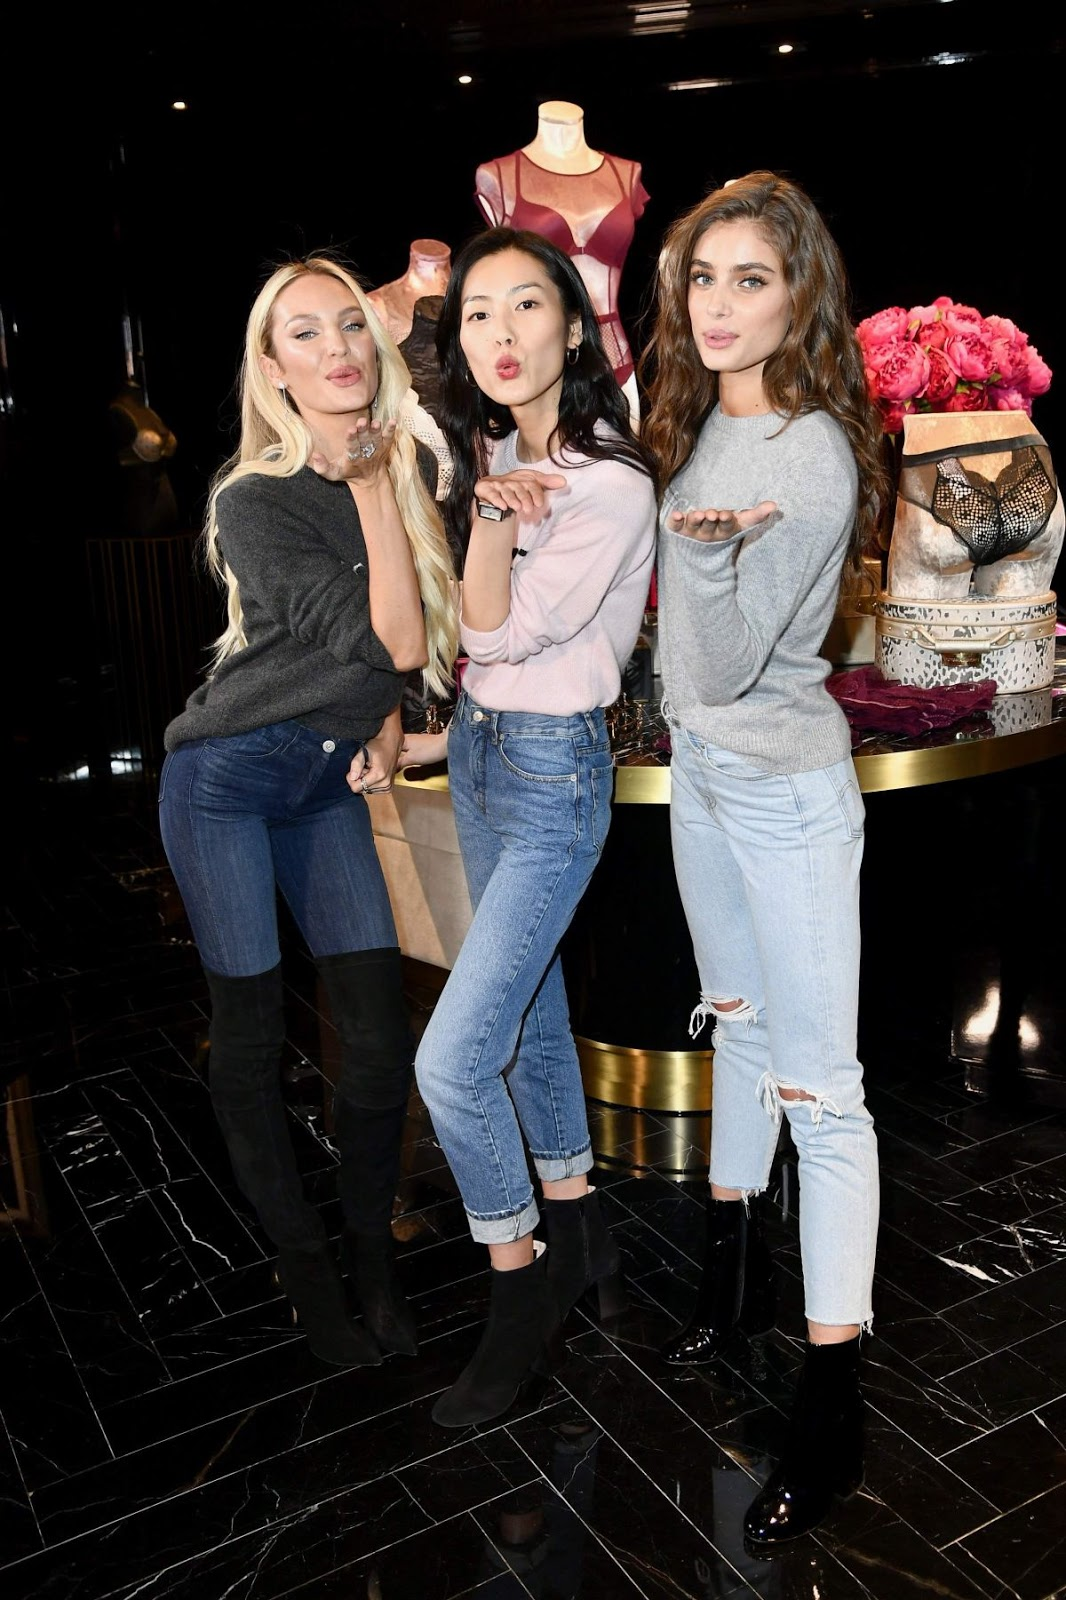 Candice Swanepoel, Liu Wen and Taylor Hill a Victoria's Secret Store in Sanghai